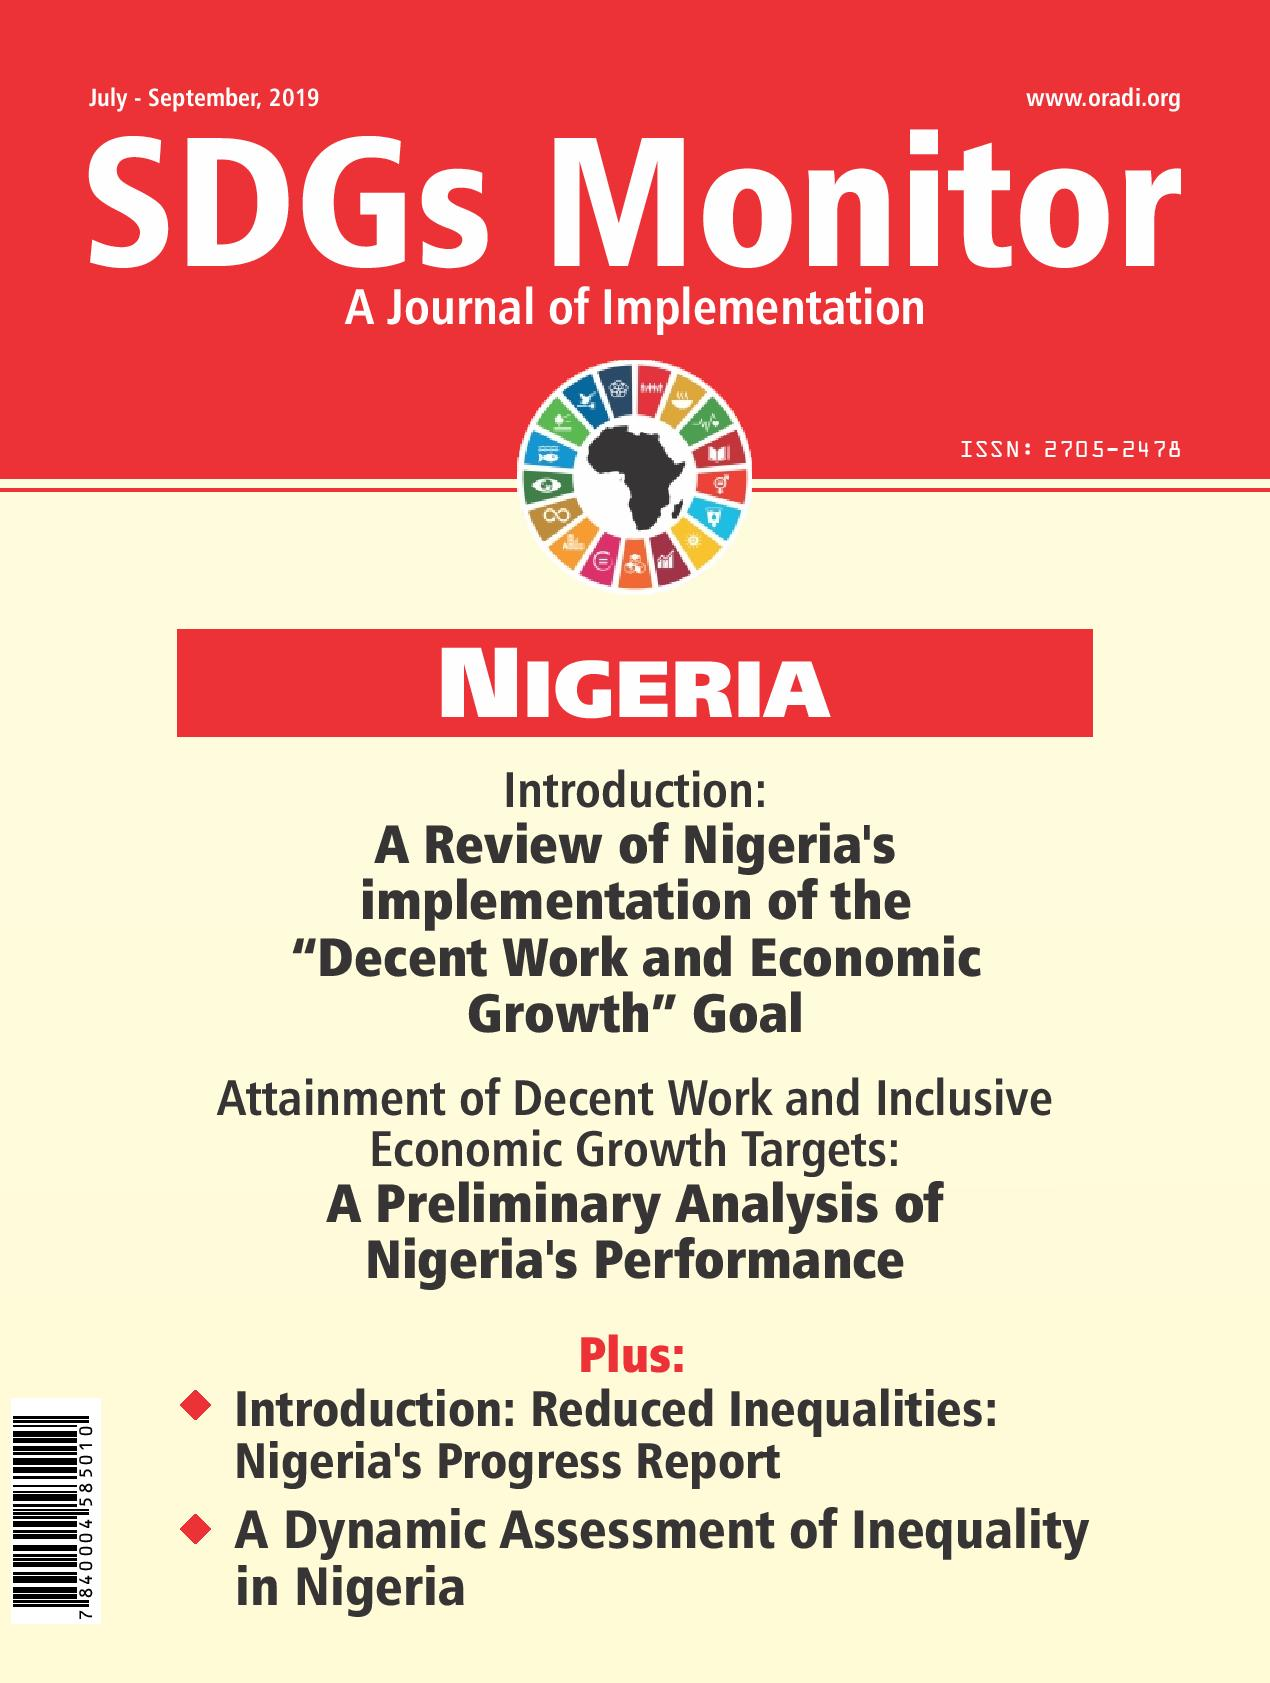 SDGs Monitor Journal (July-September, 2019) Vol. 1 No. 3